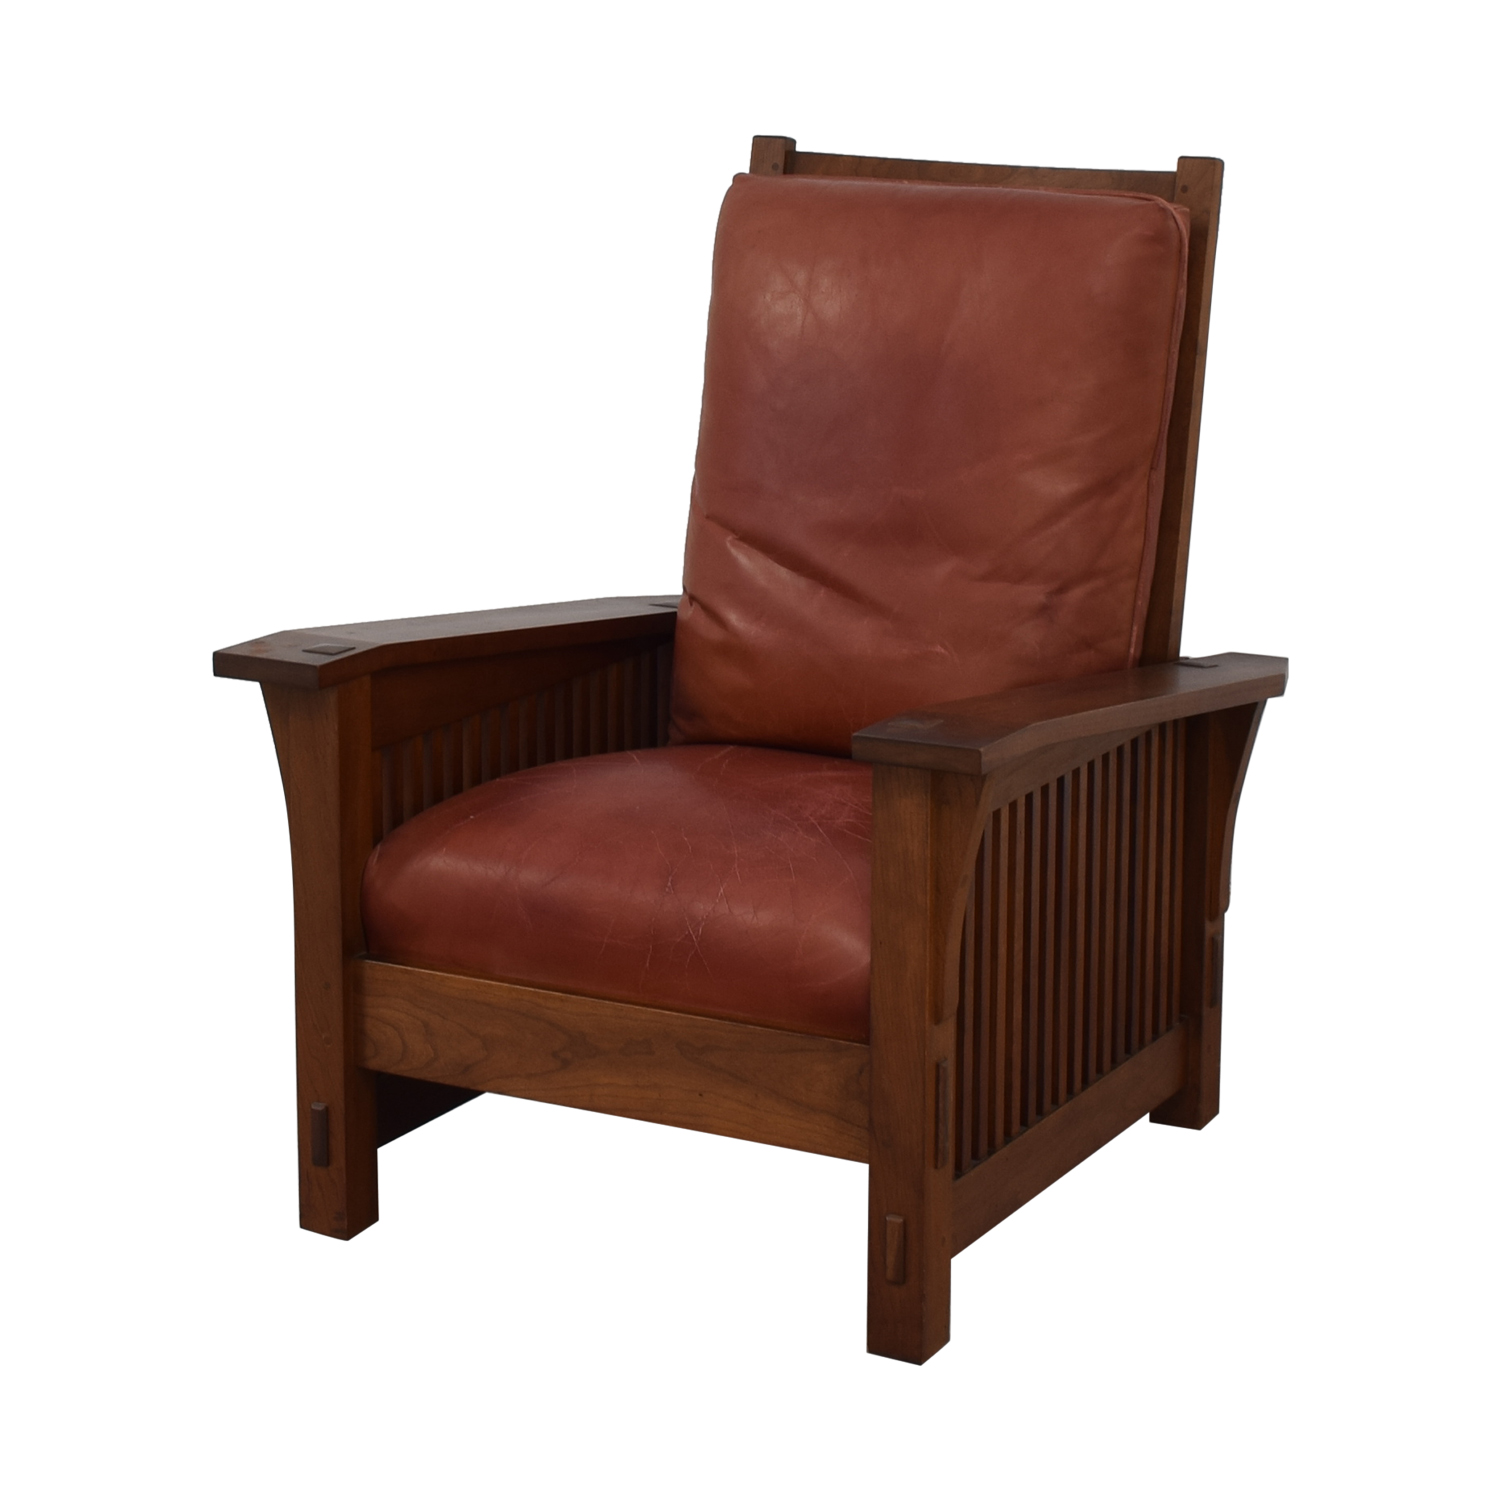 Stickley Furniture Stickley Spindle Morris Chair for sale